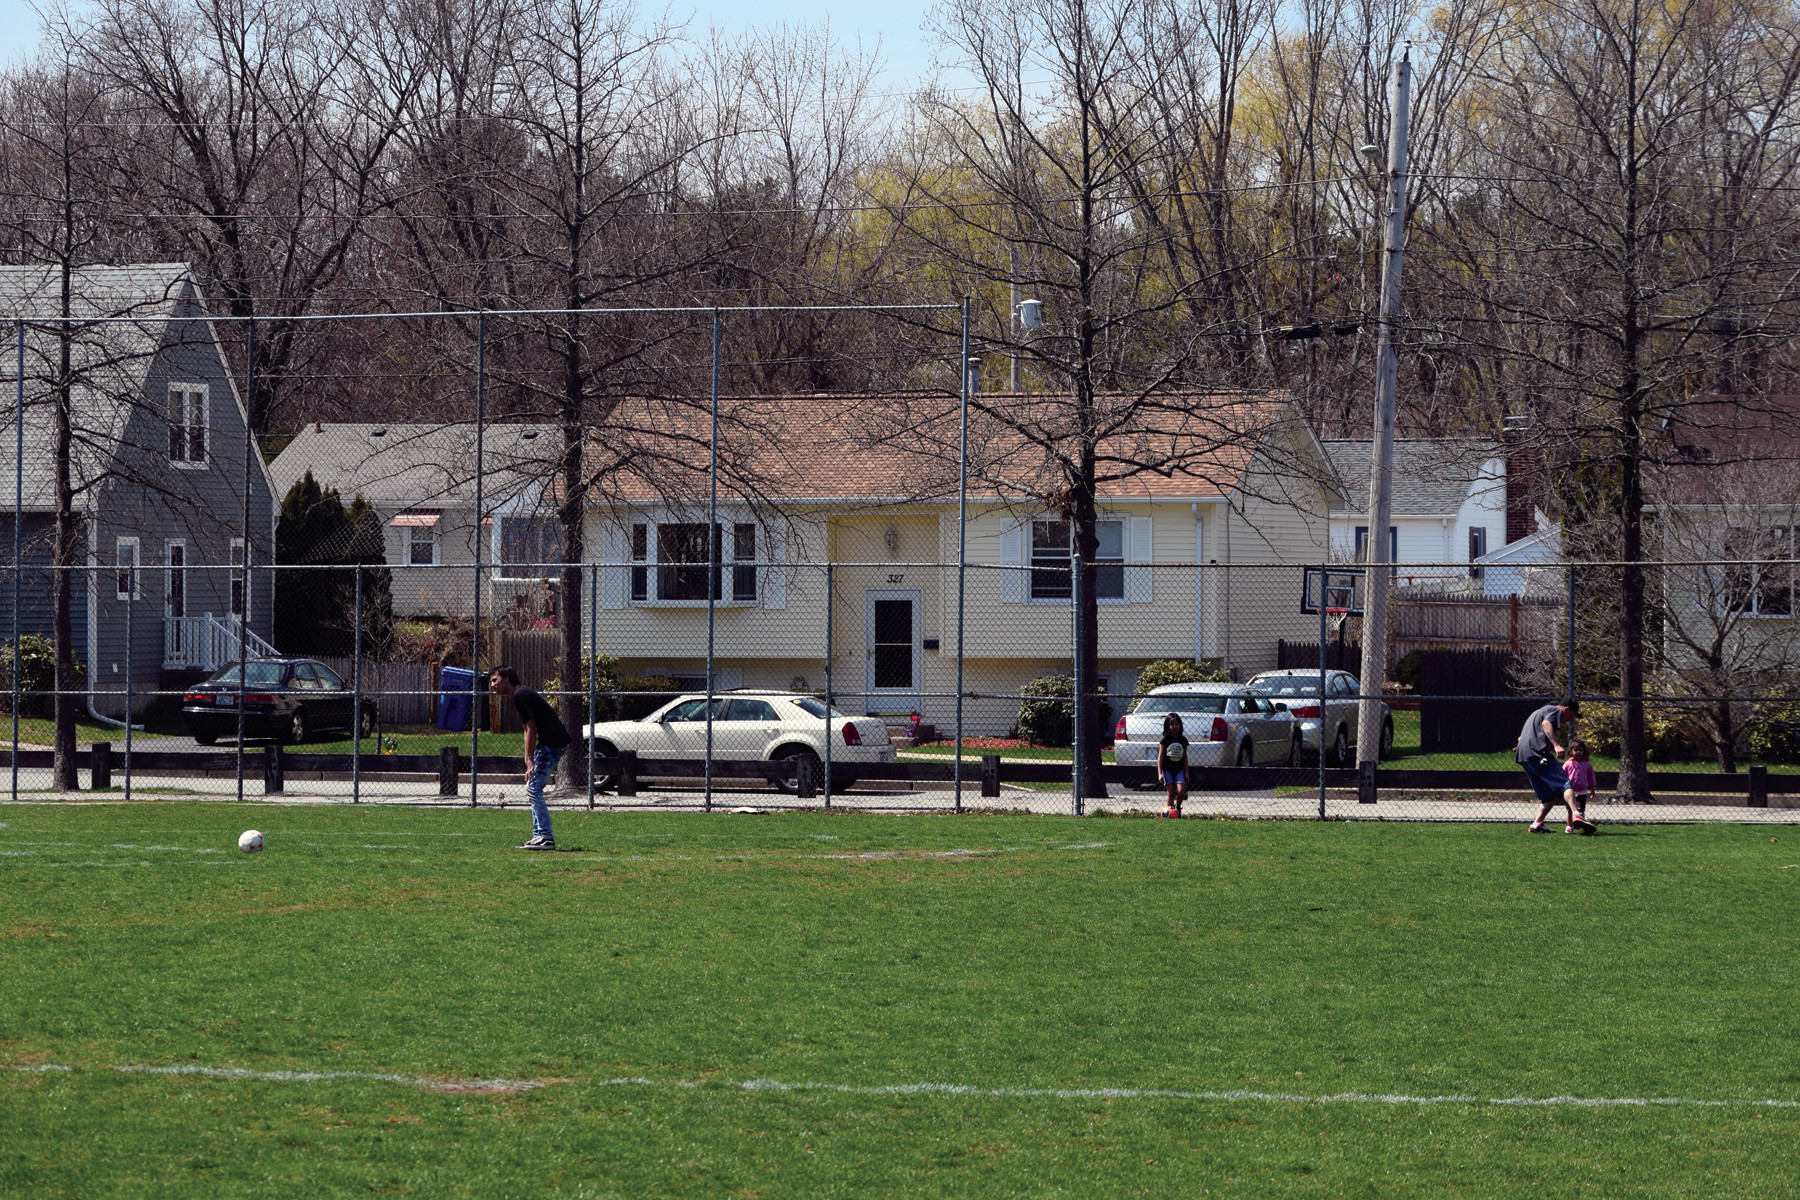 Residents enjoy the nice Saturday weather on the field.